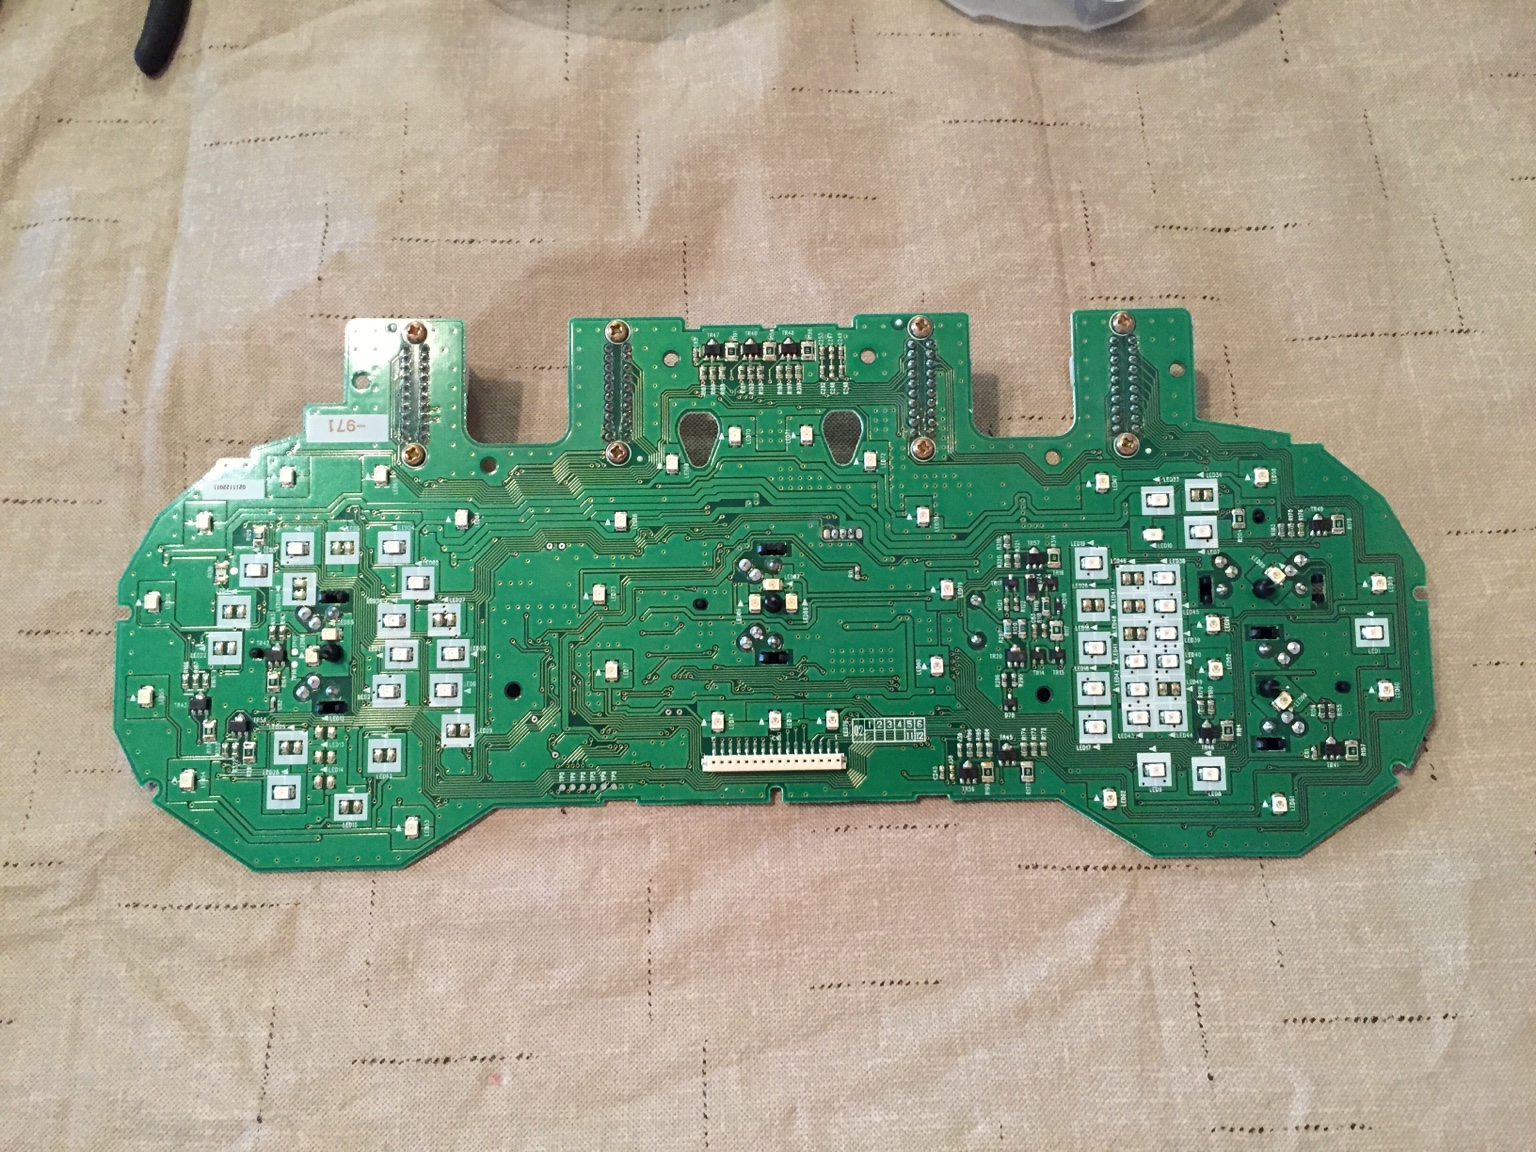 Ltdsc Build Thread Page 3 Toyota 120 Platforms Forum O View Topic Building A Control Panel With Led Route Indication You Can See Here I Have Two Leds That Arent Working Attempted To Fix And Then Ran Out Of Plcc 2s So Ordered More But Need Drive Heres